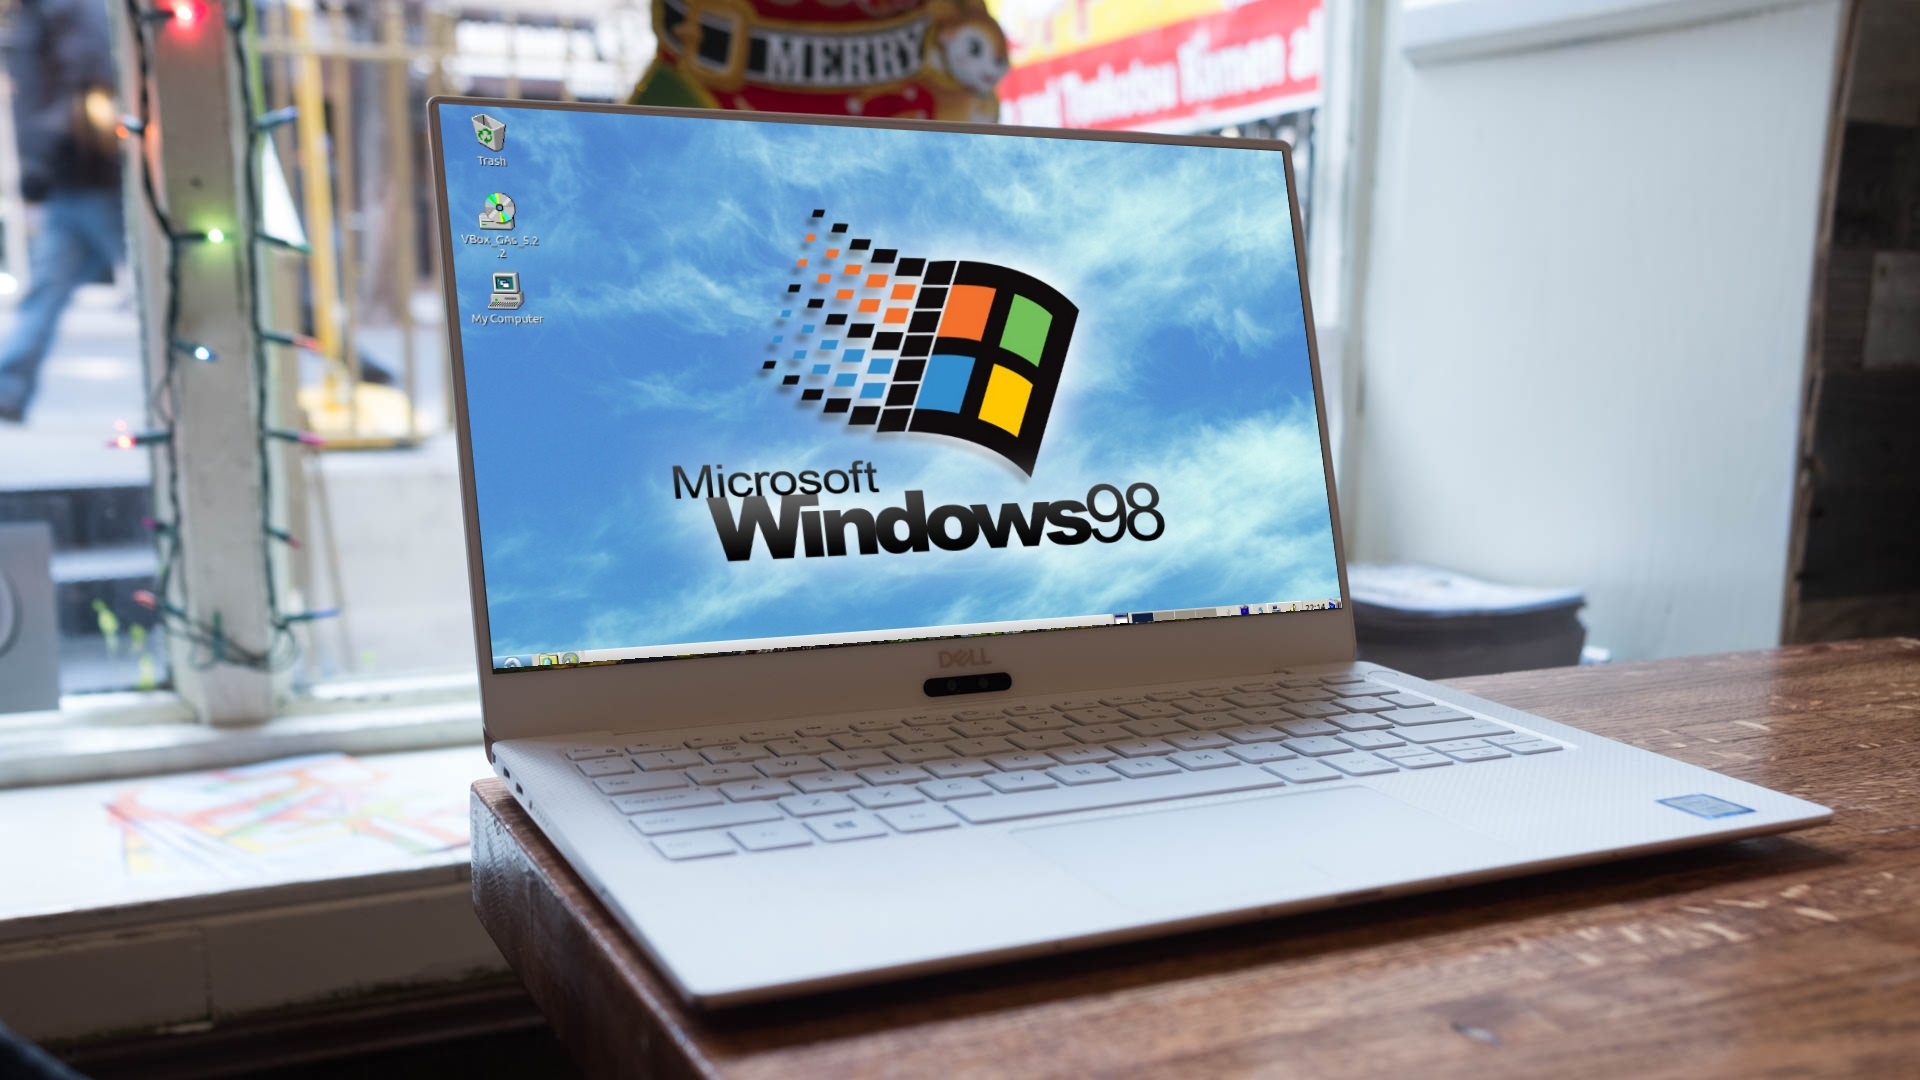 How to get the Windows 98 experience on today's PCs | TechRadar